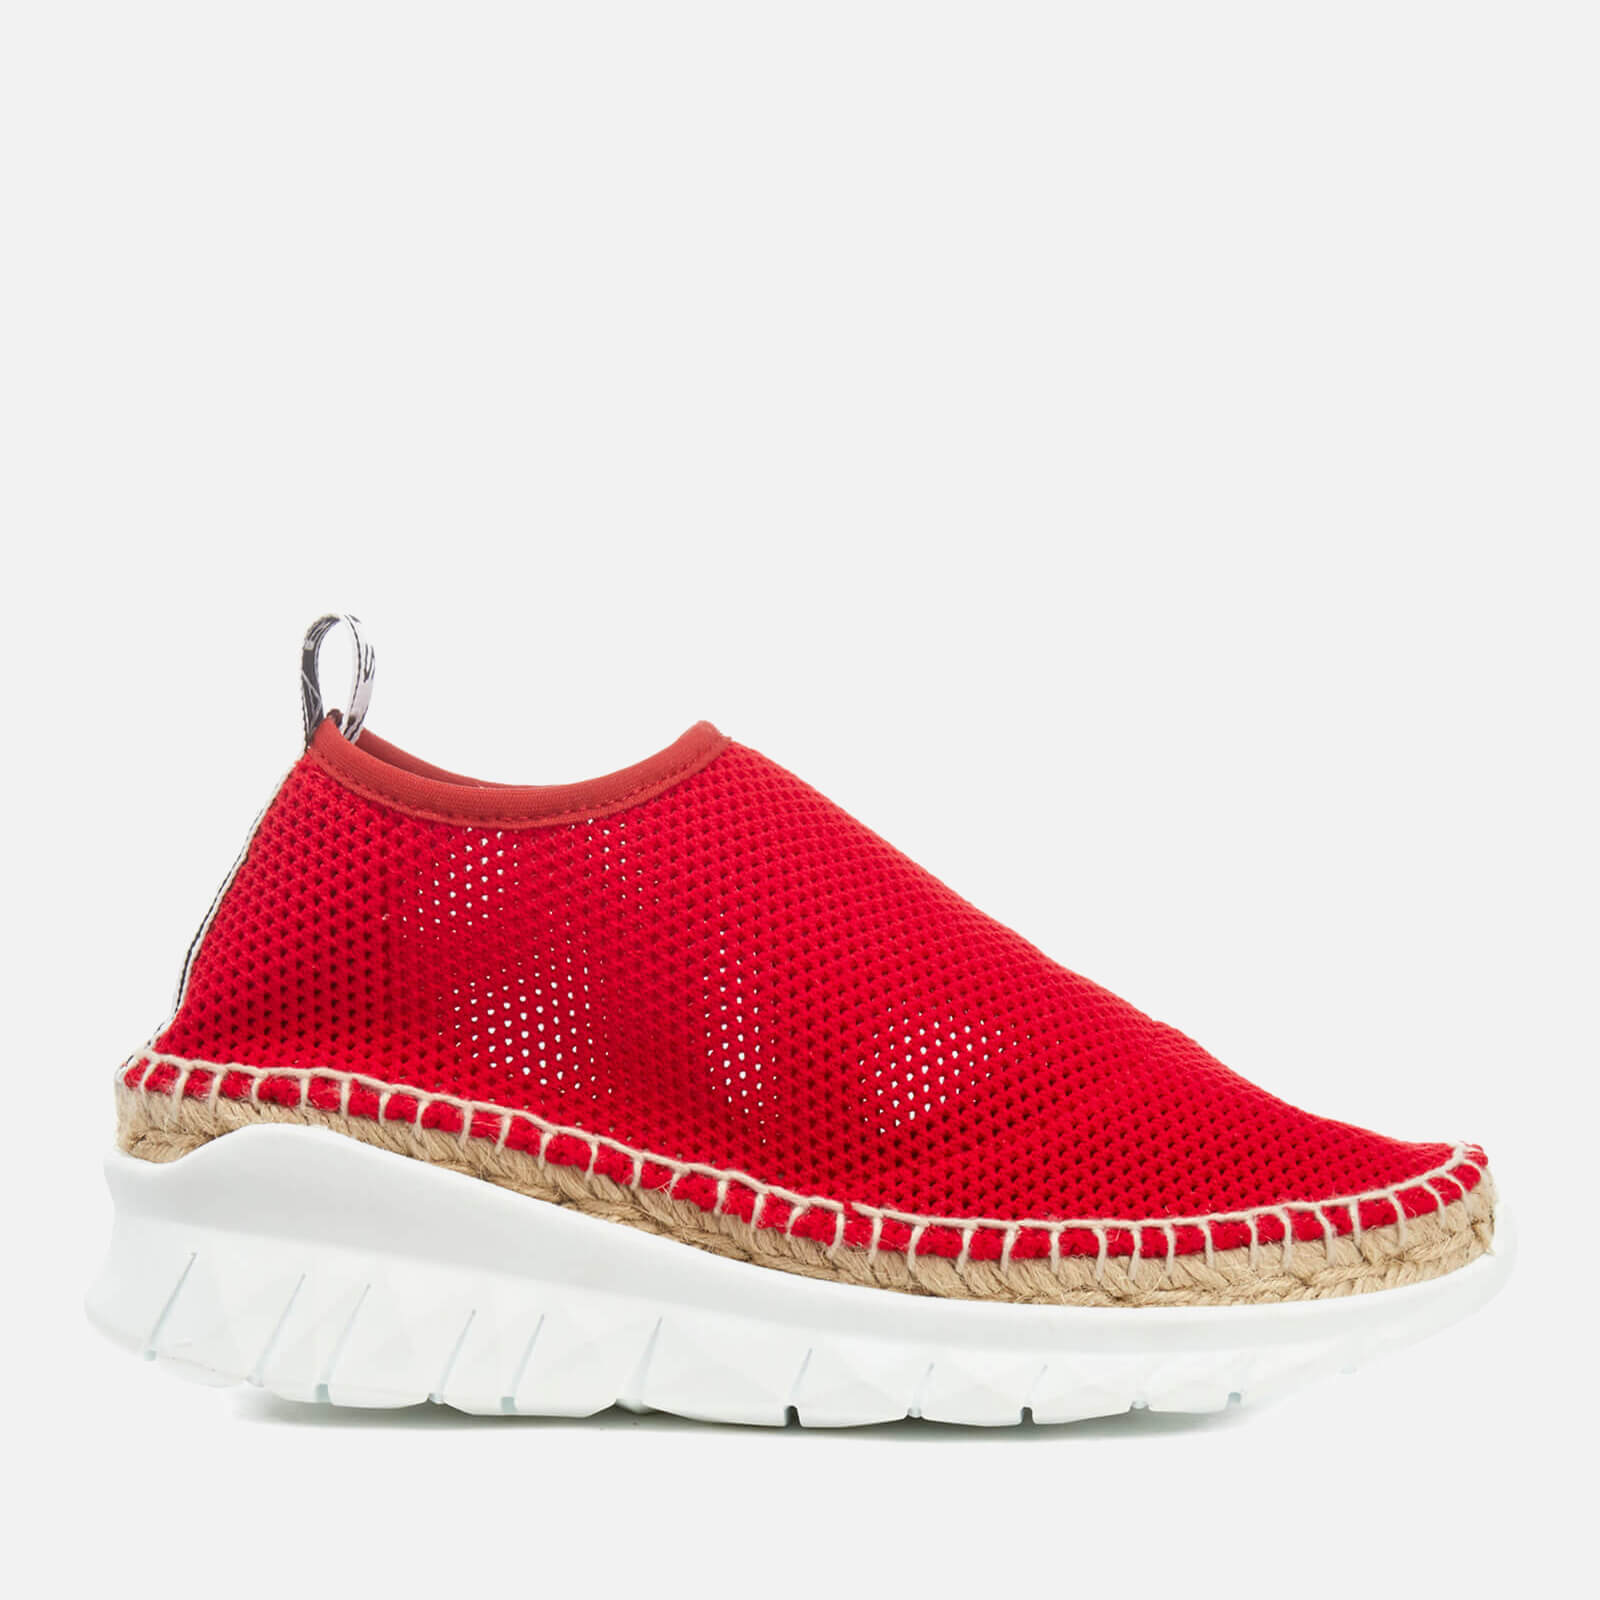 fbd9d927 KENZO Women's K Lastic Hybrid Sports Espadrilles - Vermillion - Free UK  Delivery over £50